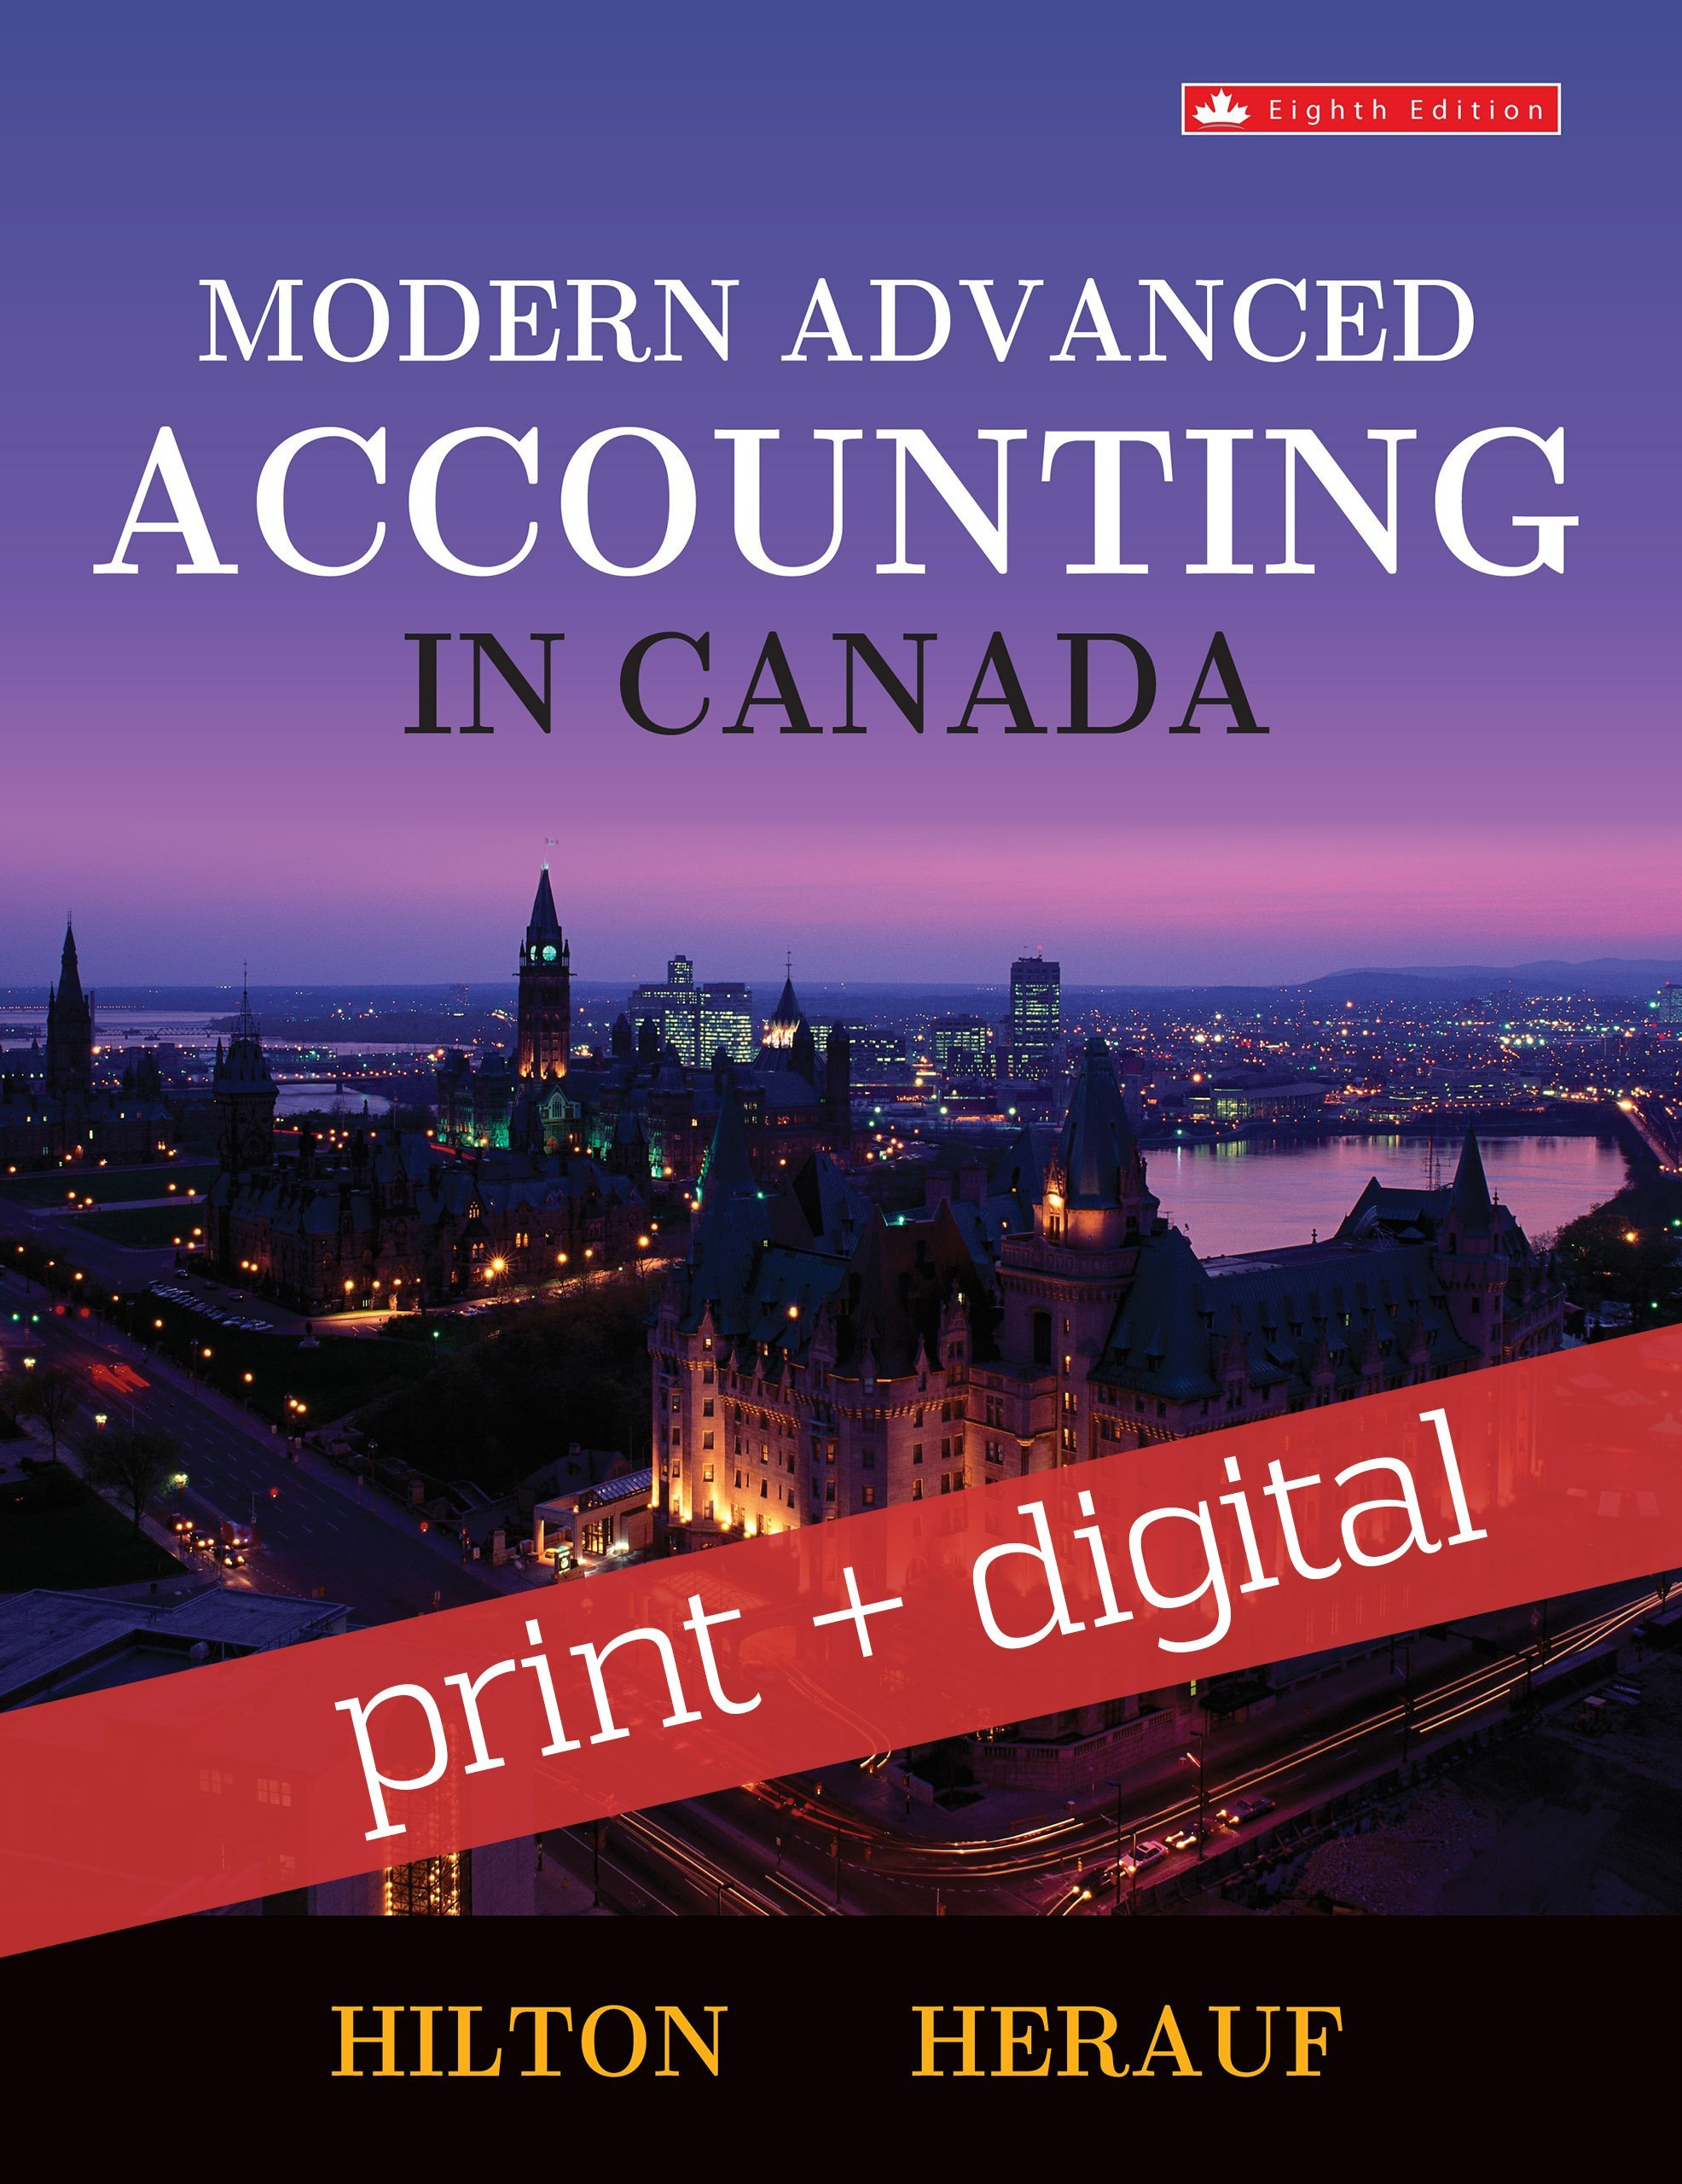 Modern advanced accounting in canada, fifth edition by murray.